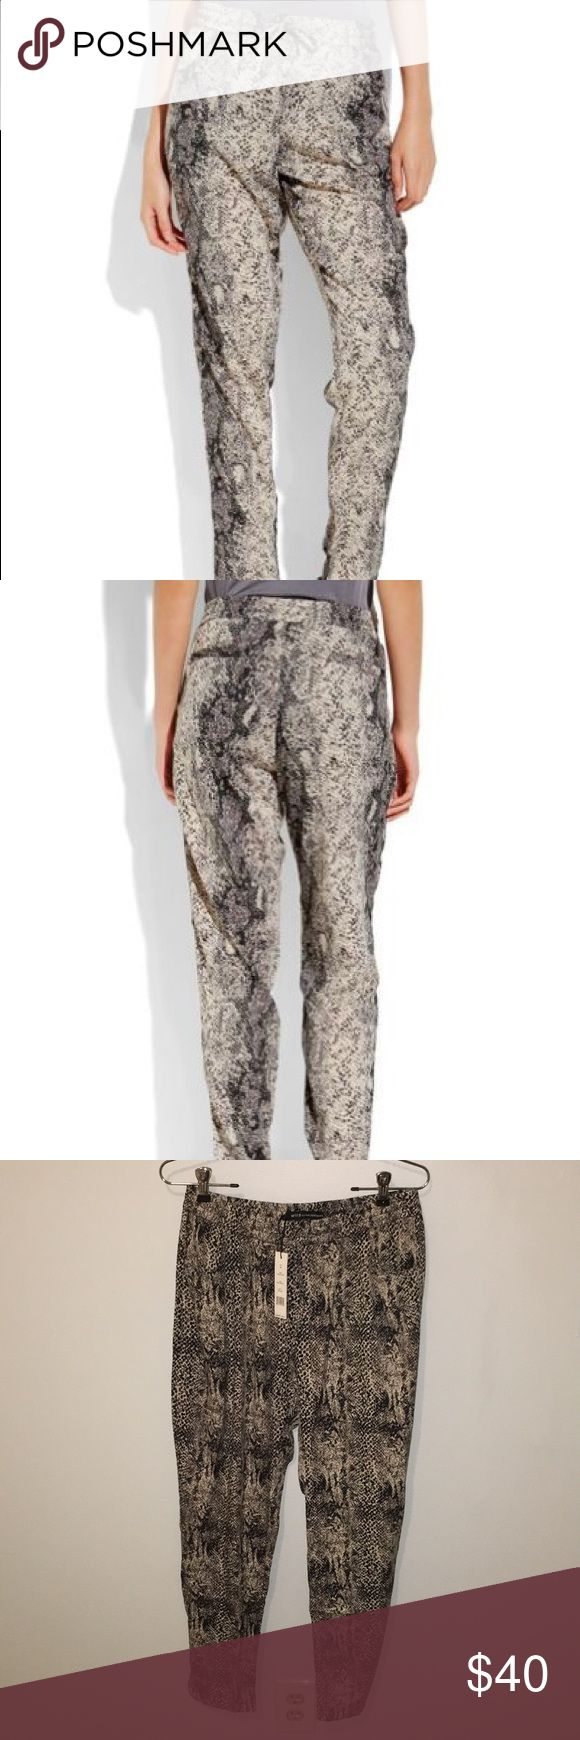 W118 by Walter Baker Dakota Pant NWT W118 by Walter Baker Dakota Pant NWT. Color: grey reptile. Size M. So cute and comfortable! Walter Baker Pants